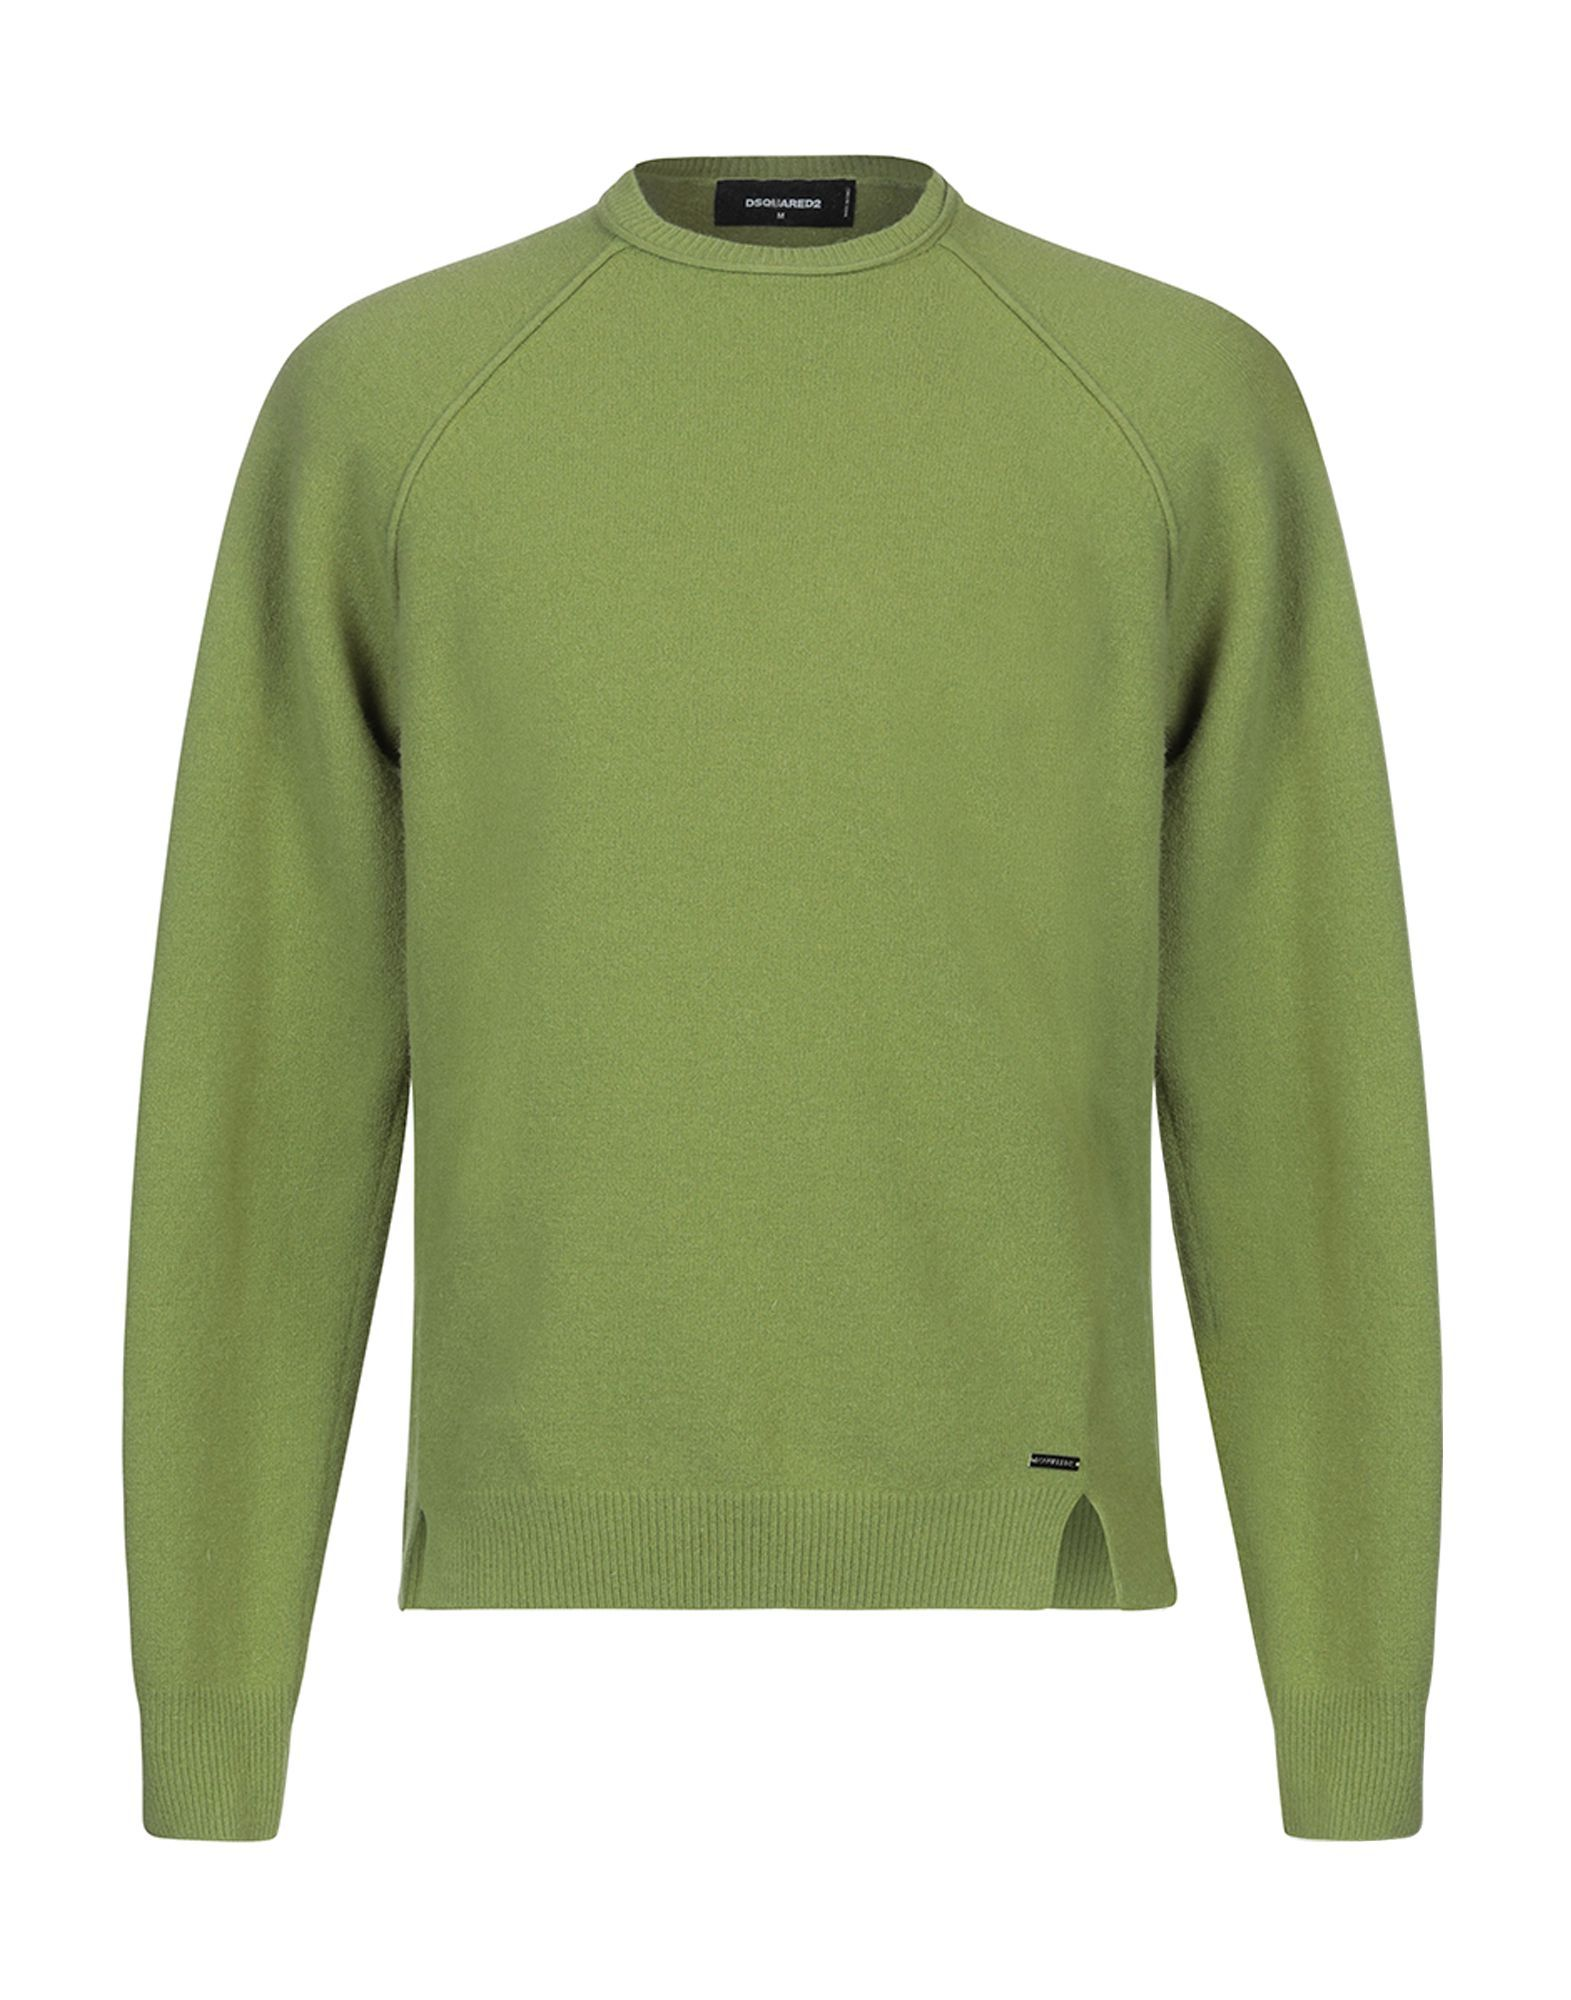 Dsquared2 Green Virgin Wool Lightweight Knit Jumper